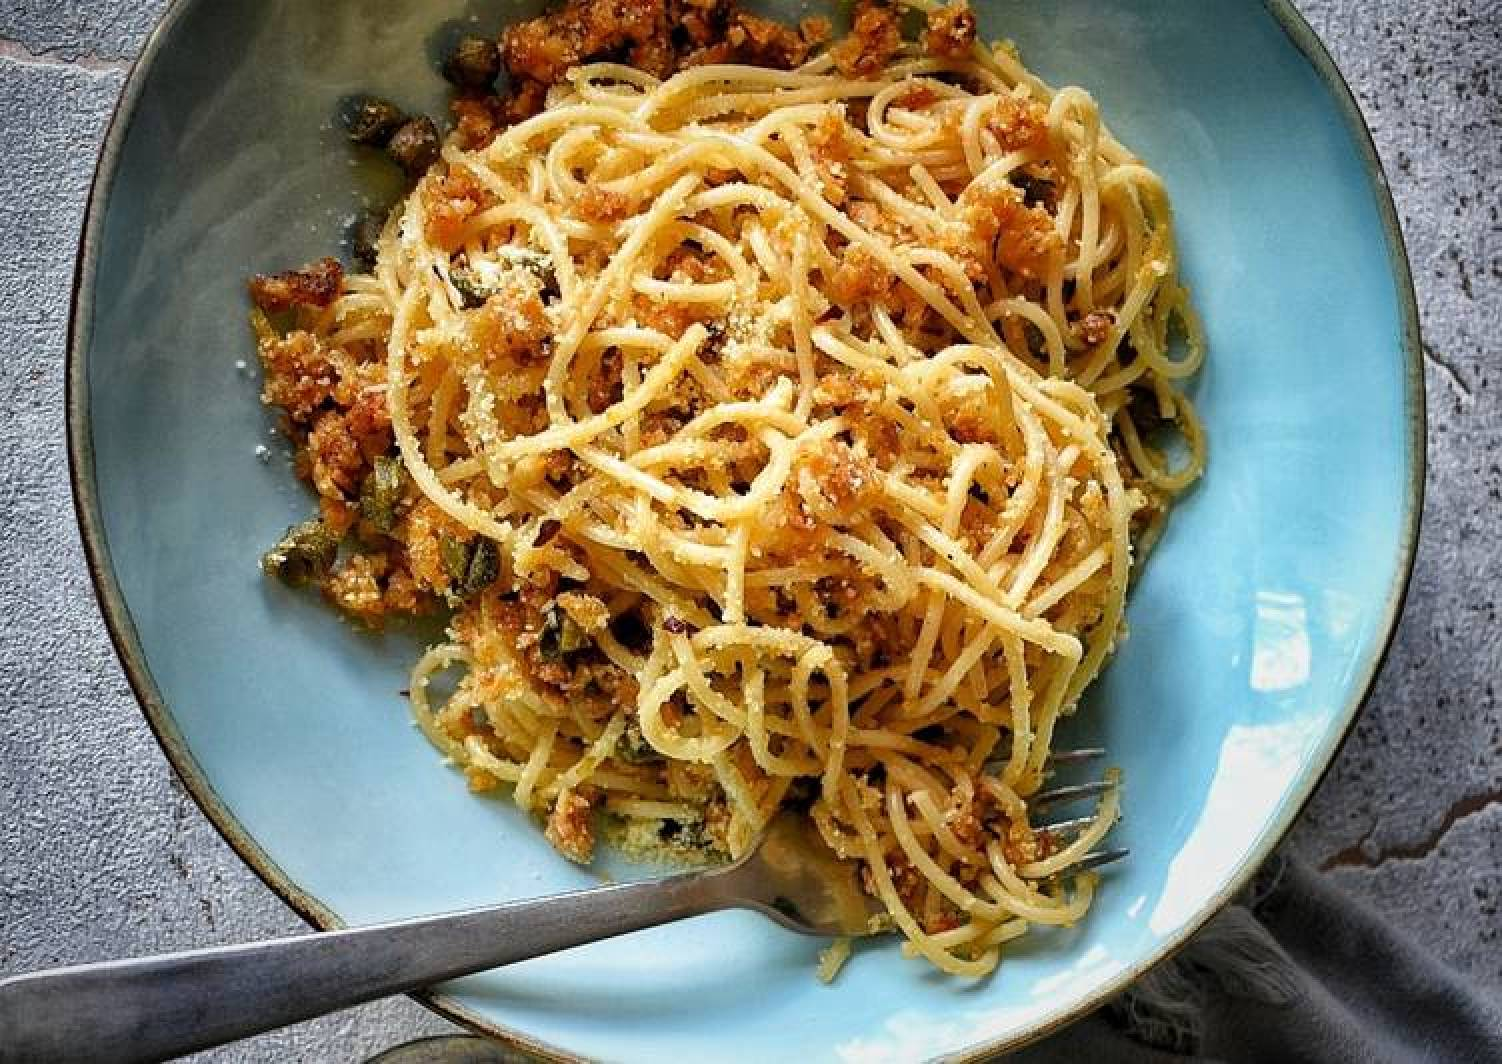 Spaghetti With Capers, Anchovies & Breadcrumbs